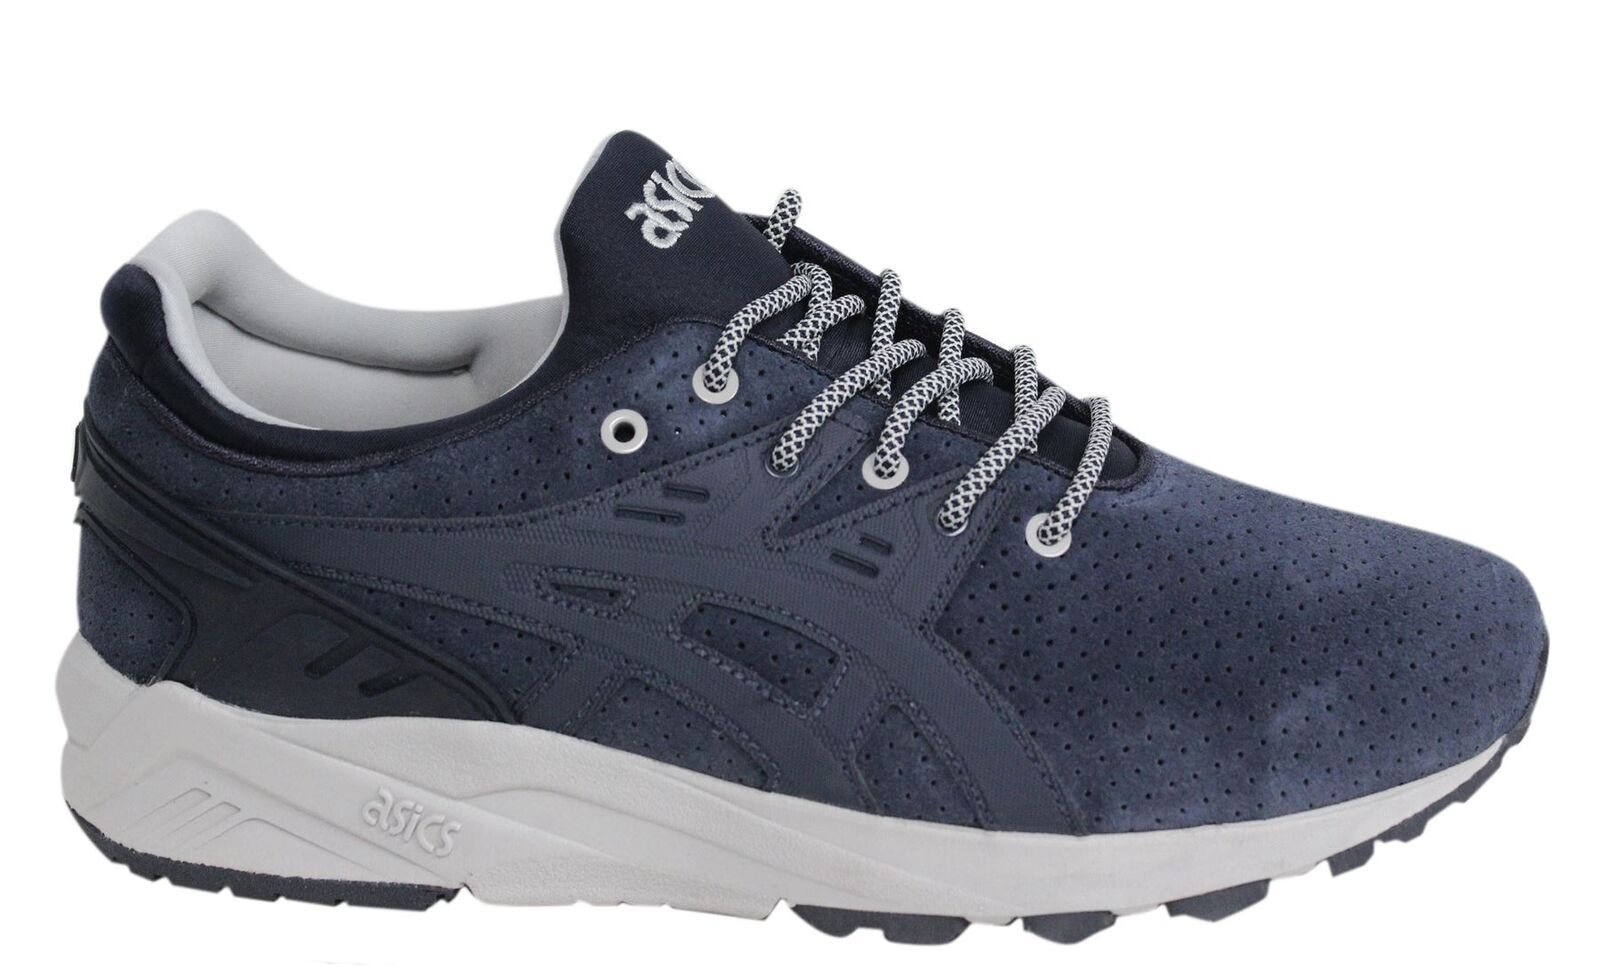 91e4c78e27b742 Asics Gel-Kayano Evo Lace Up India Ink Mens Leather Trainers H620L ...